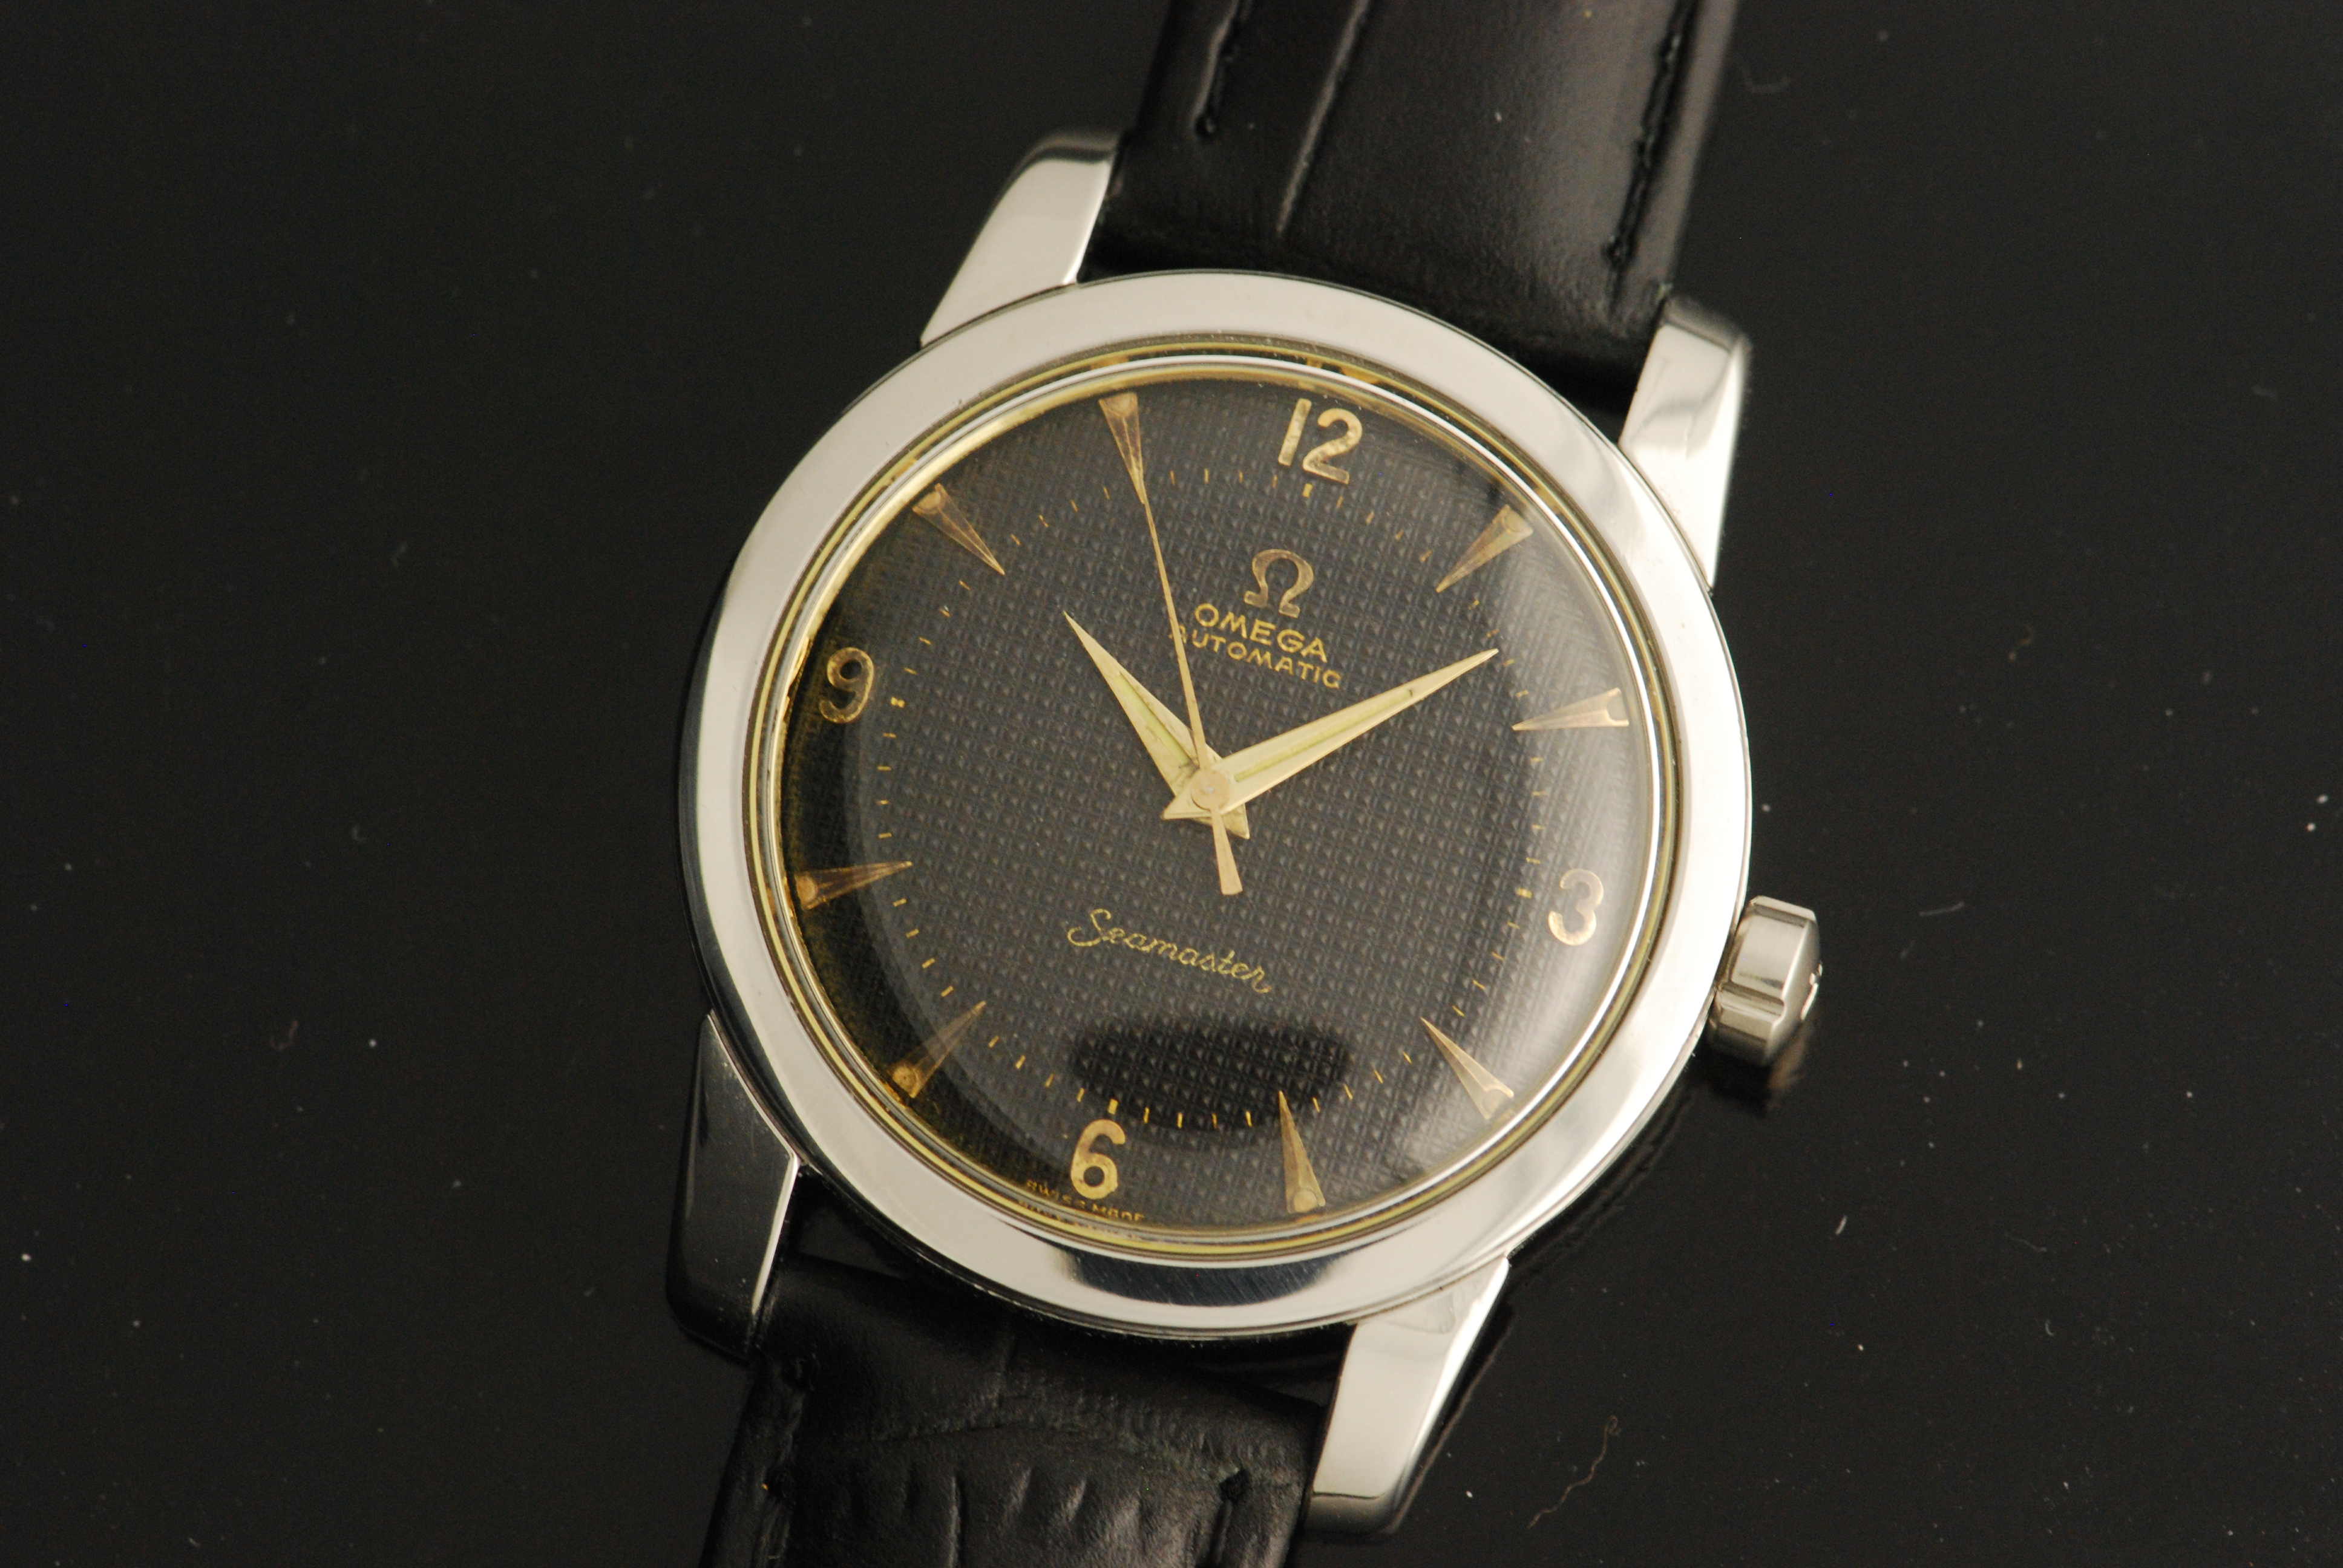 Vintage Watches For Sale >> Vintage Watch For Sale Omega Enthusiast Vintage Watches For Sale